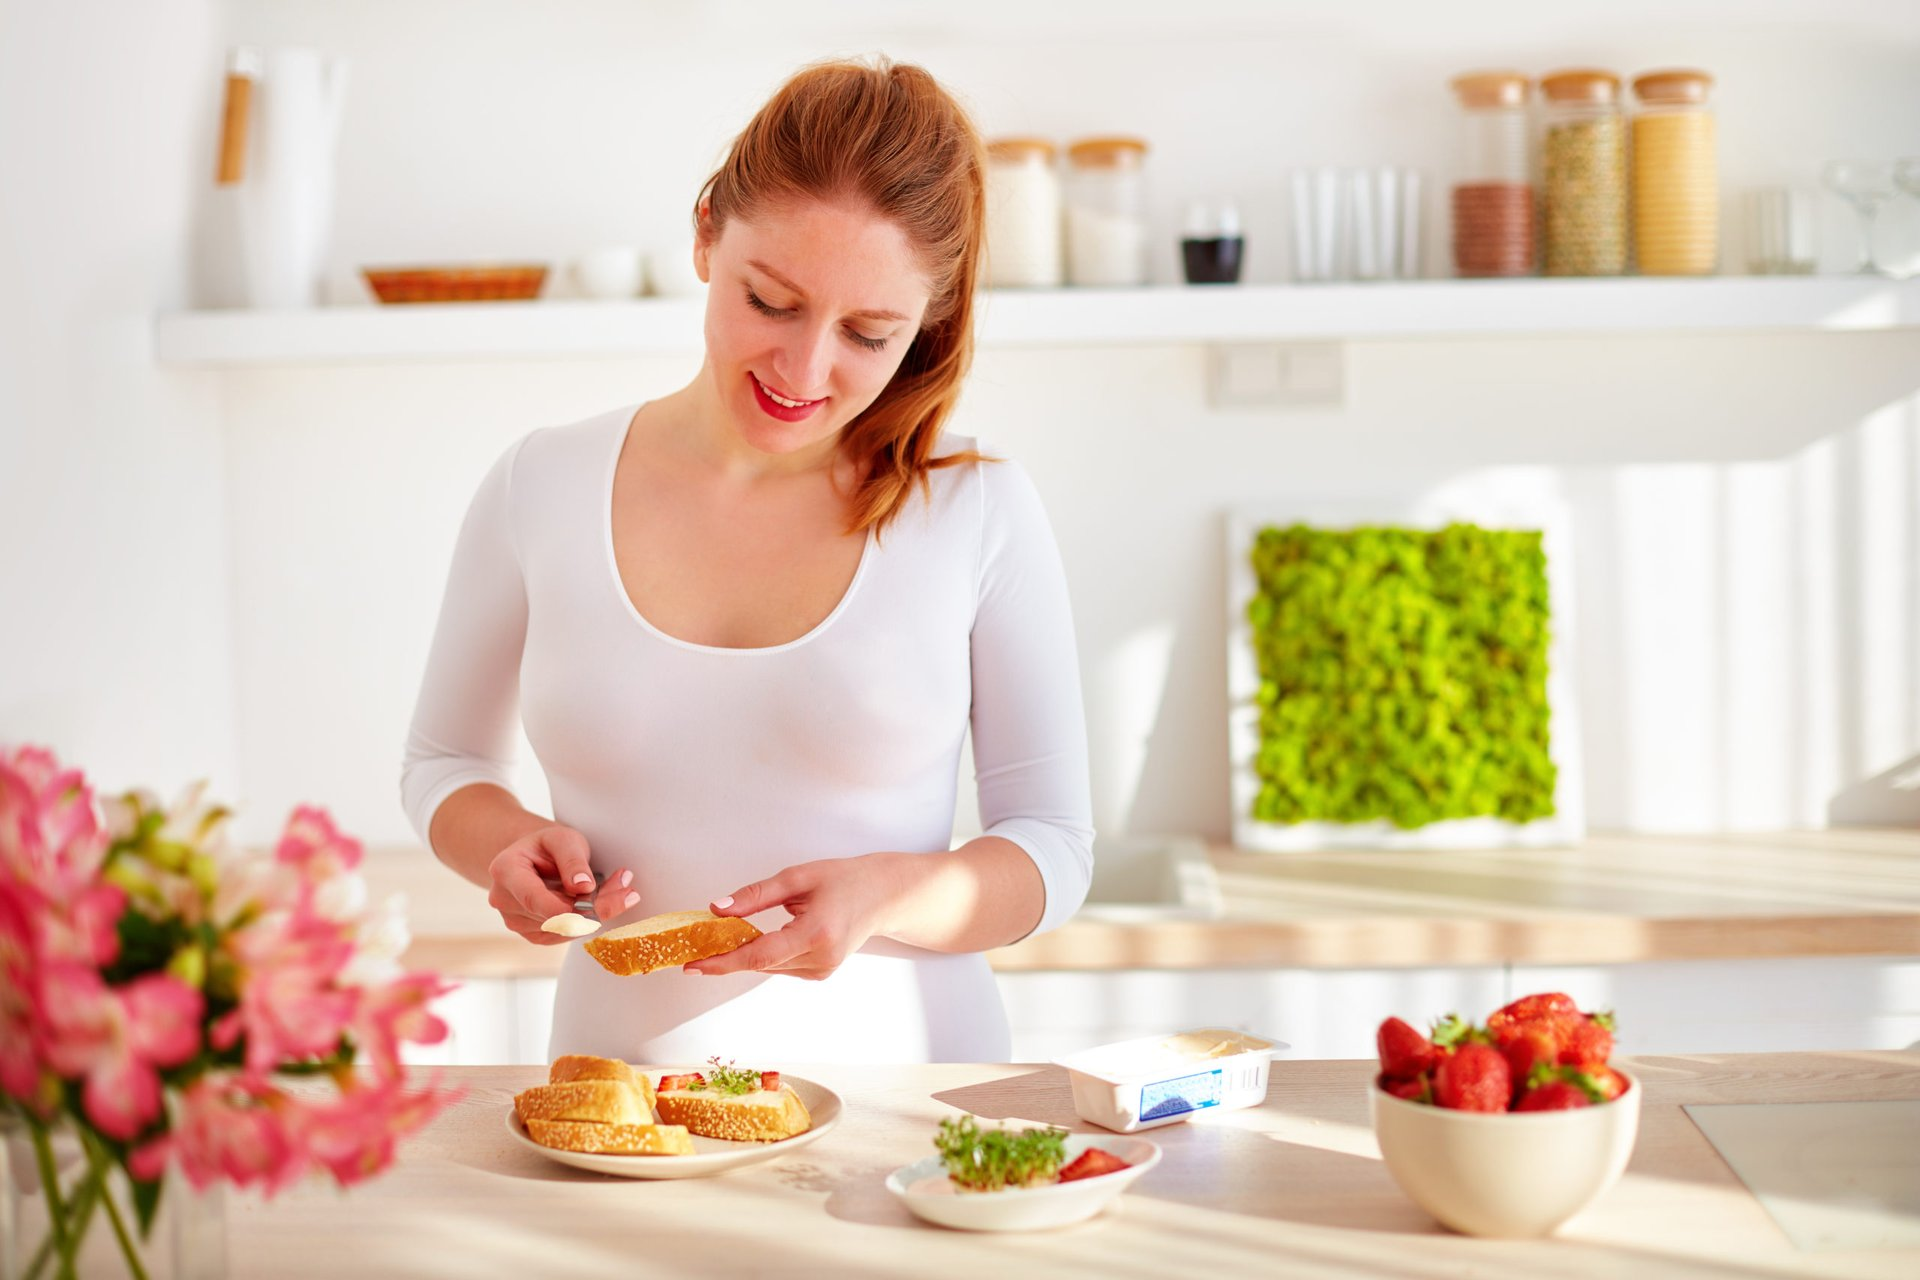 a woman prepares a meal at home